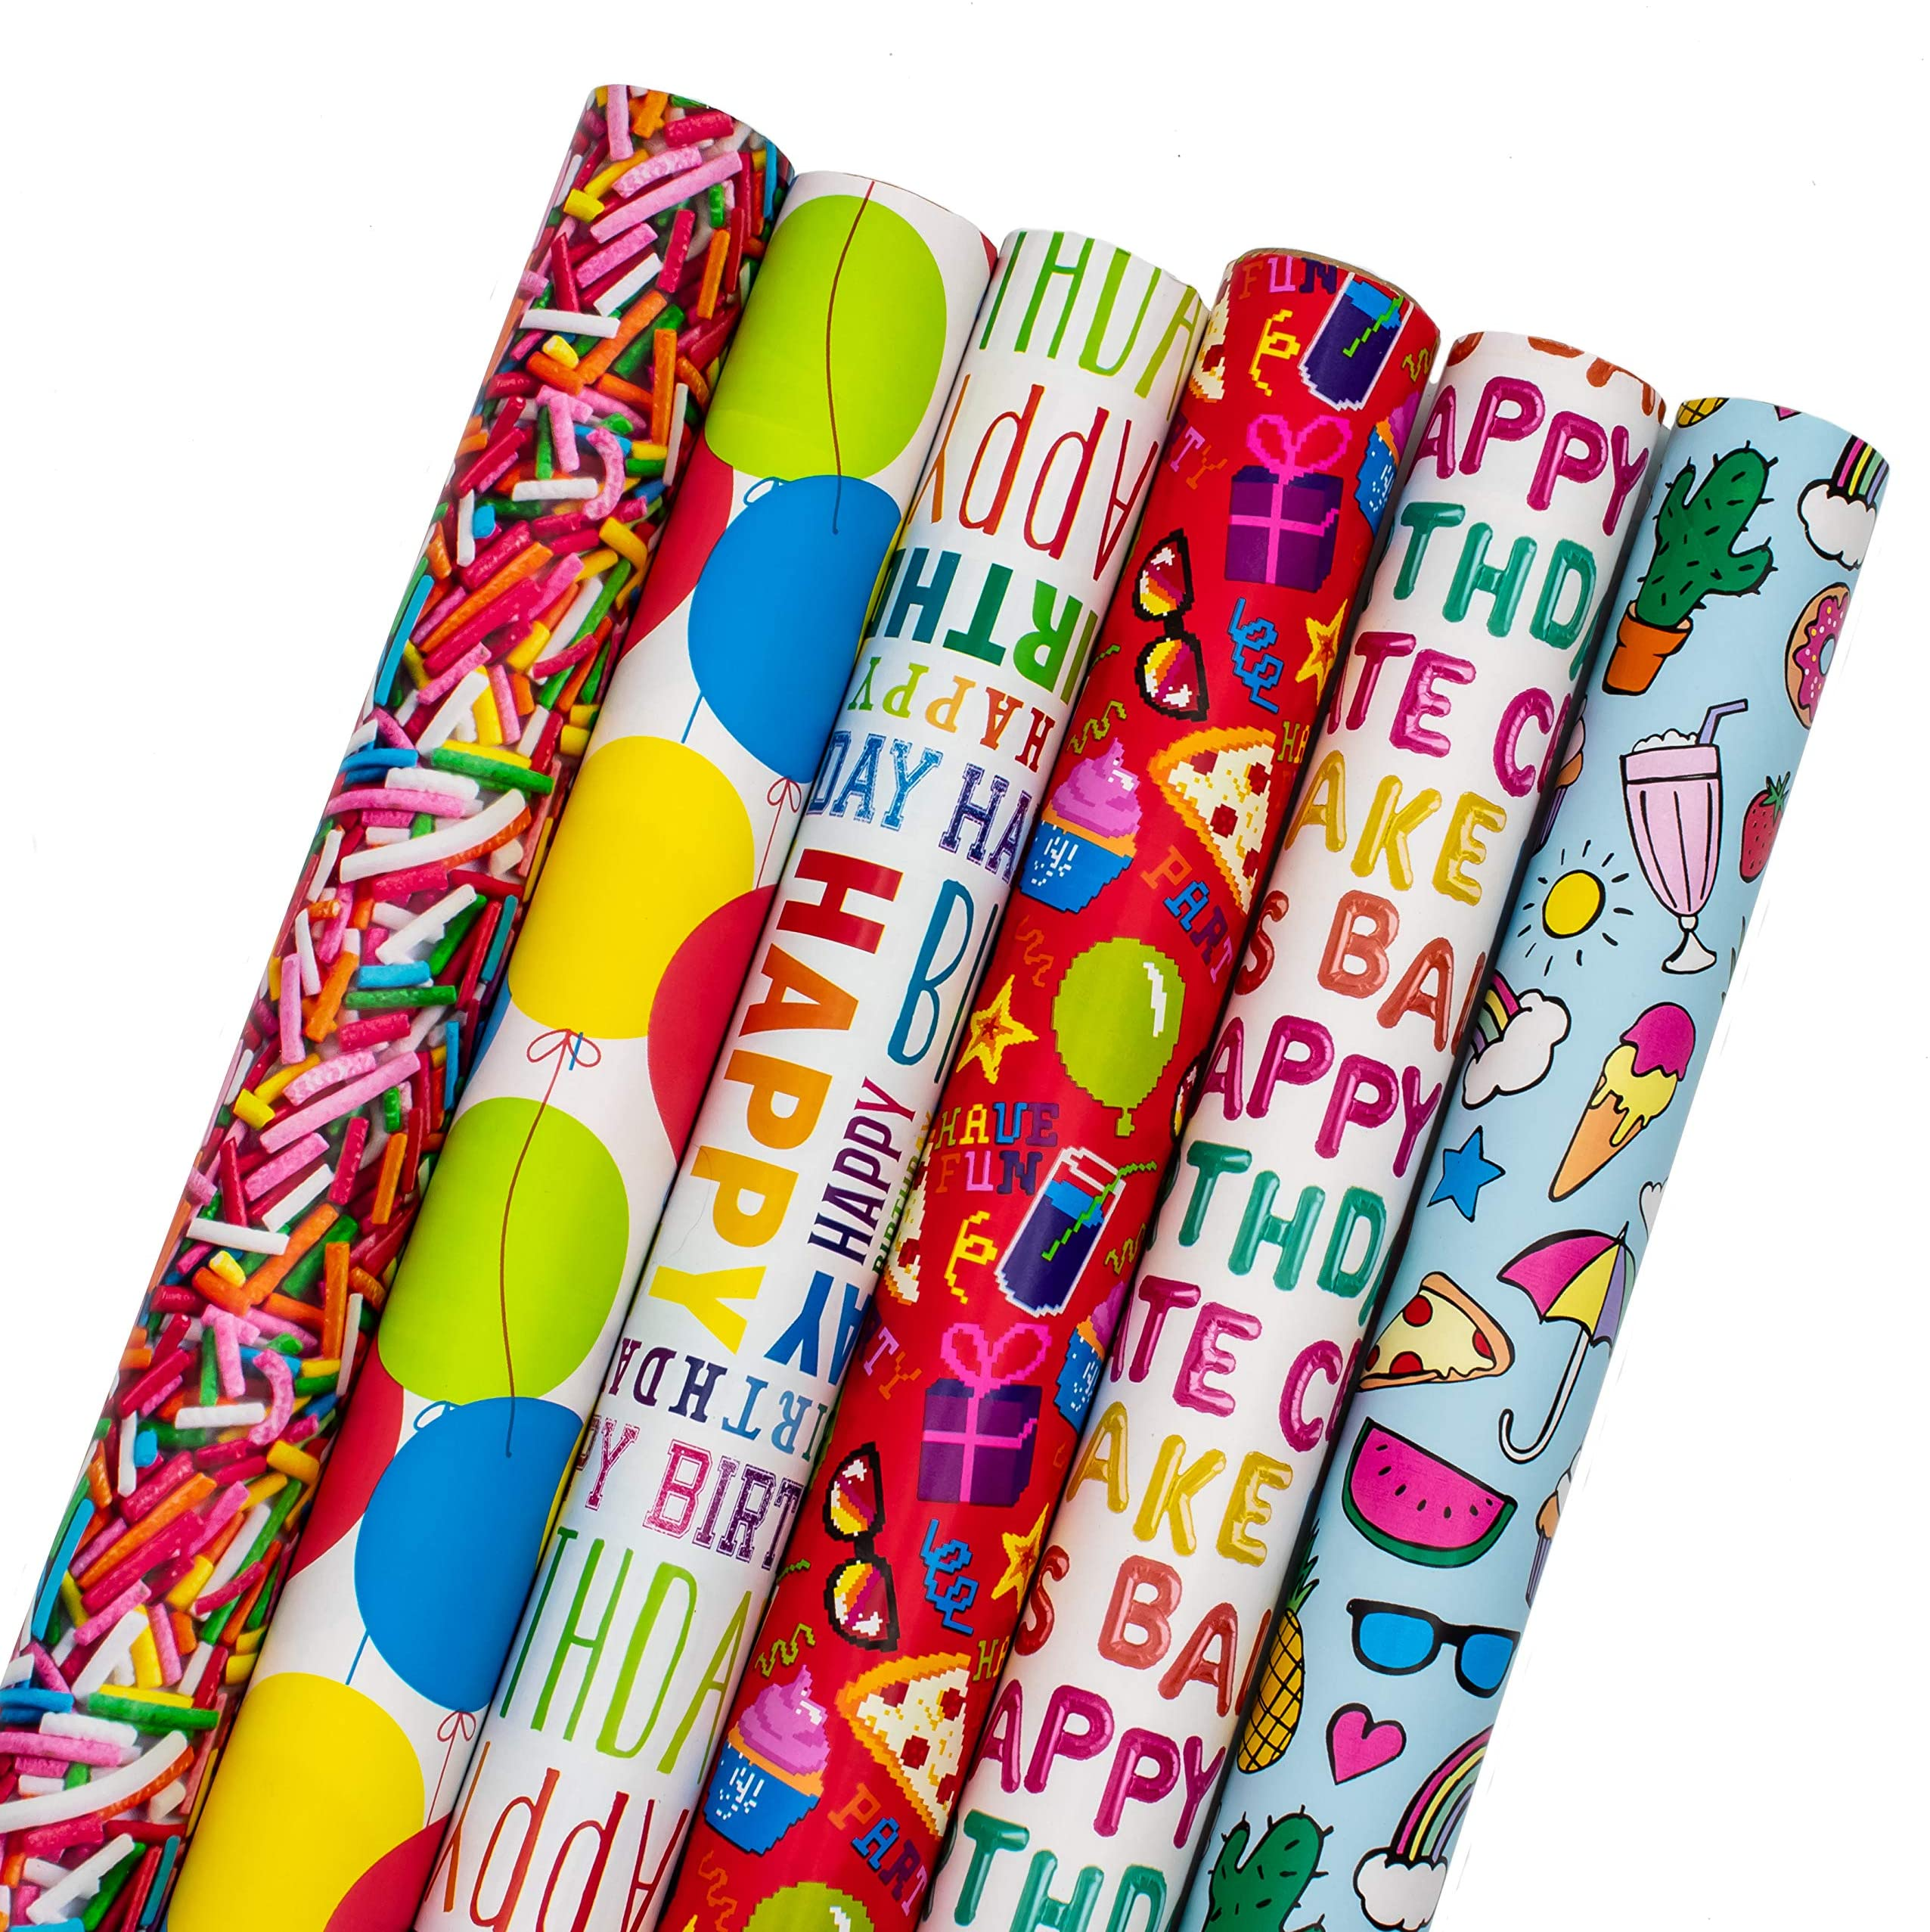 B-THERE Birthday Gift Wrap Wrapping Paper for Boys, Girls, Adults. 6 Cute & Funny Different Designs of 6 ft X 30 Roll! Includes Cactus, Fruit, Rainbows, Rainbow Sprinkles, Pizza, Balloons, Donuts